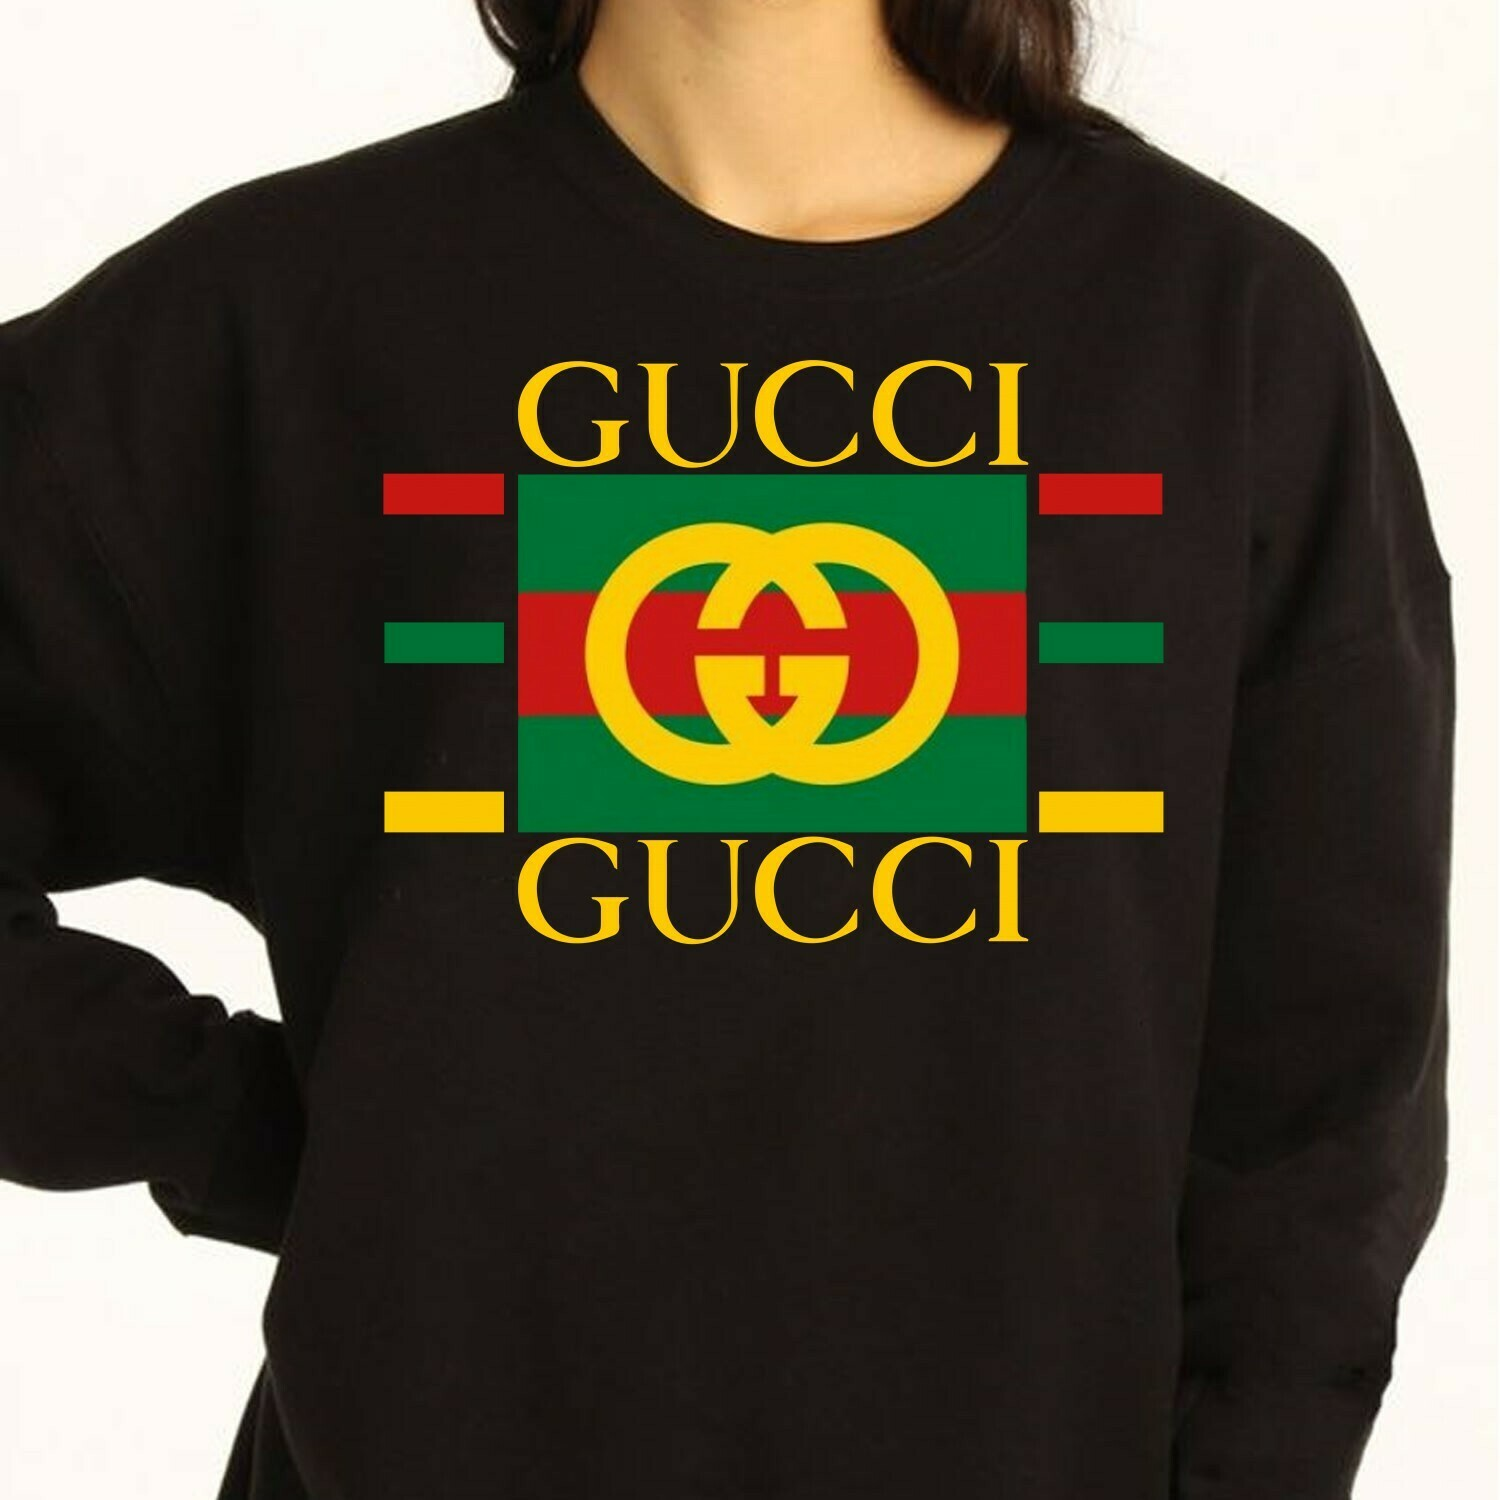 Gucci Yellow Interlocking logo printer,Coco Capitan Phrases,Vintage 90s Fruit Of The Loom Bootleg Gucci gift T-Shirt Long Sleeve Sweatshirt Hoodie Jolly Family Gifts